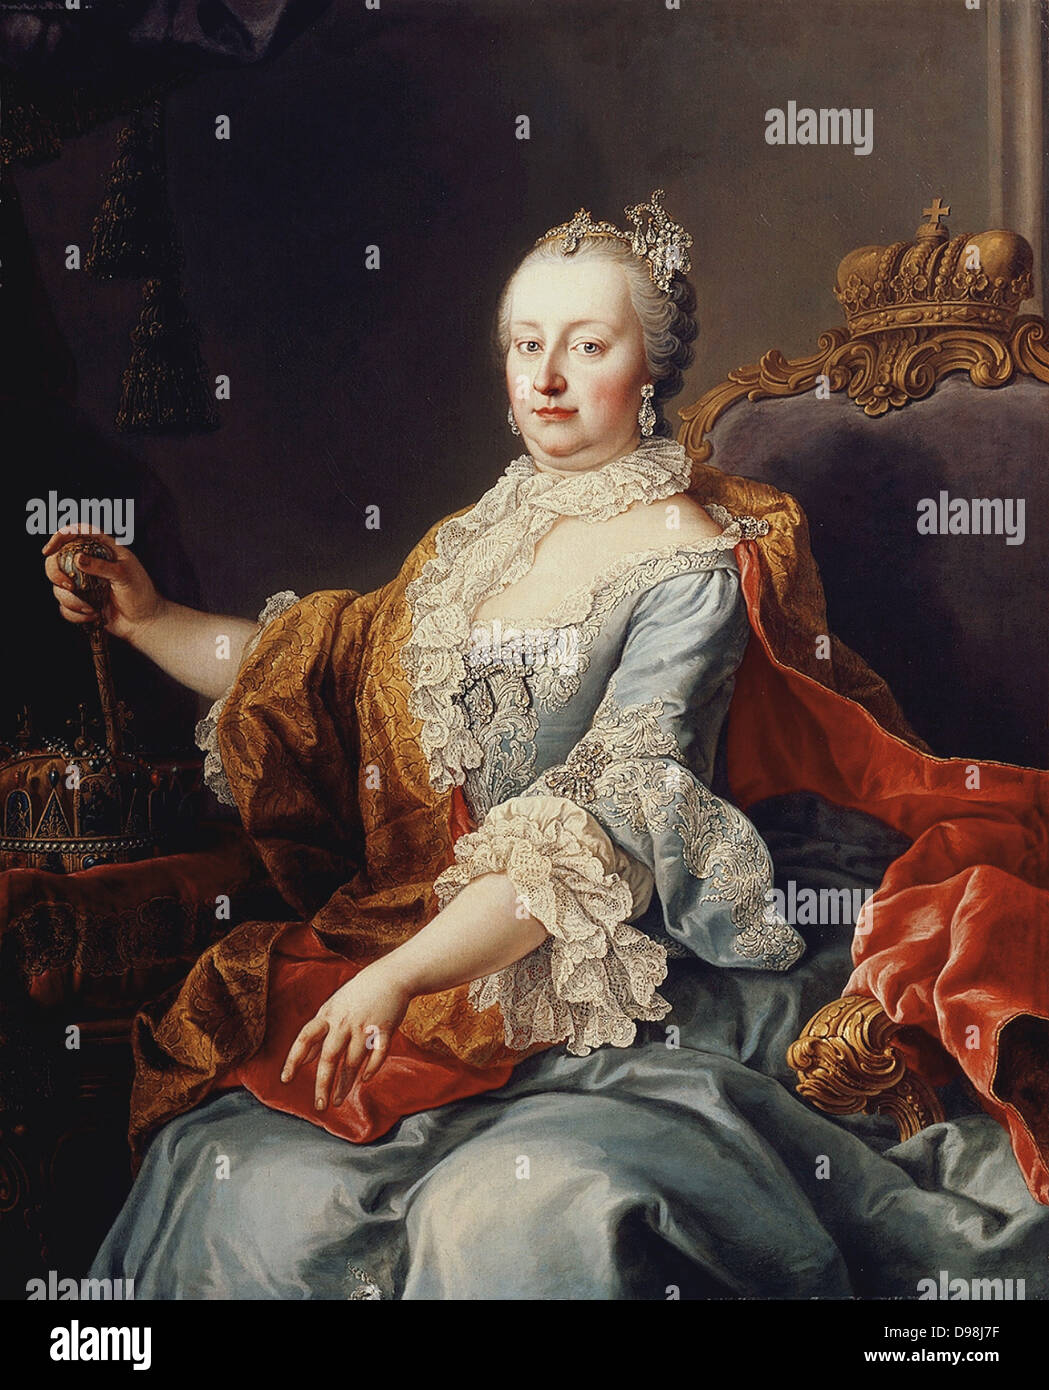 Maria Theresa (1717-1780), archduchess of Austria, Holy Roman Empress, and Queen of Hungary and Bohemia, began her - Stock Image